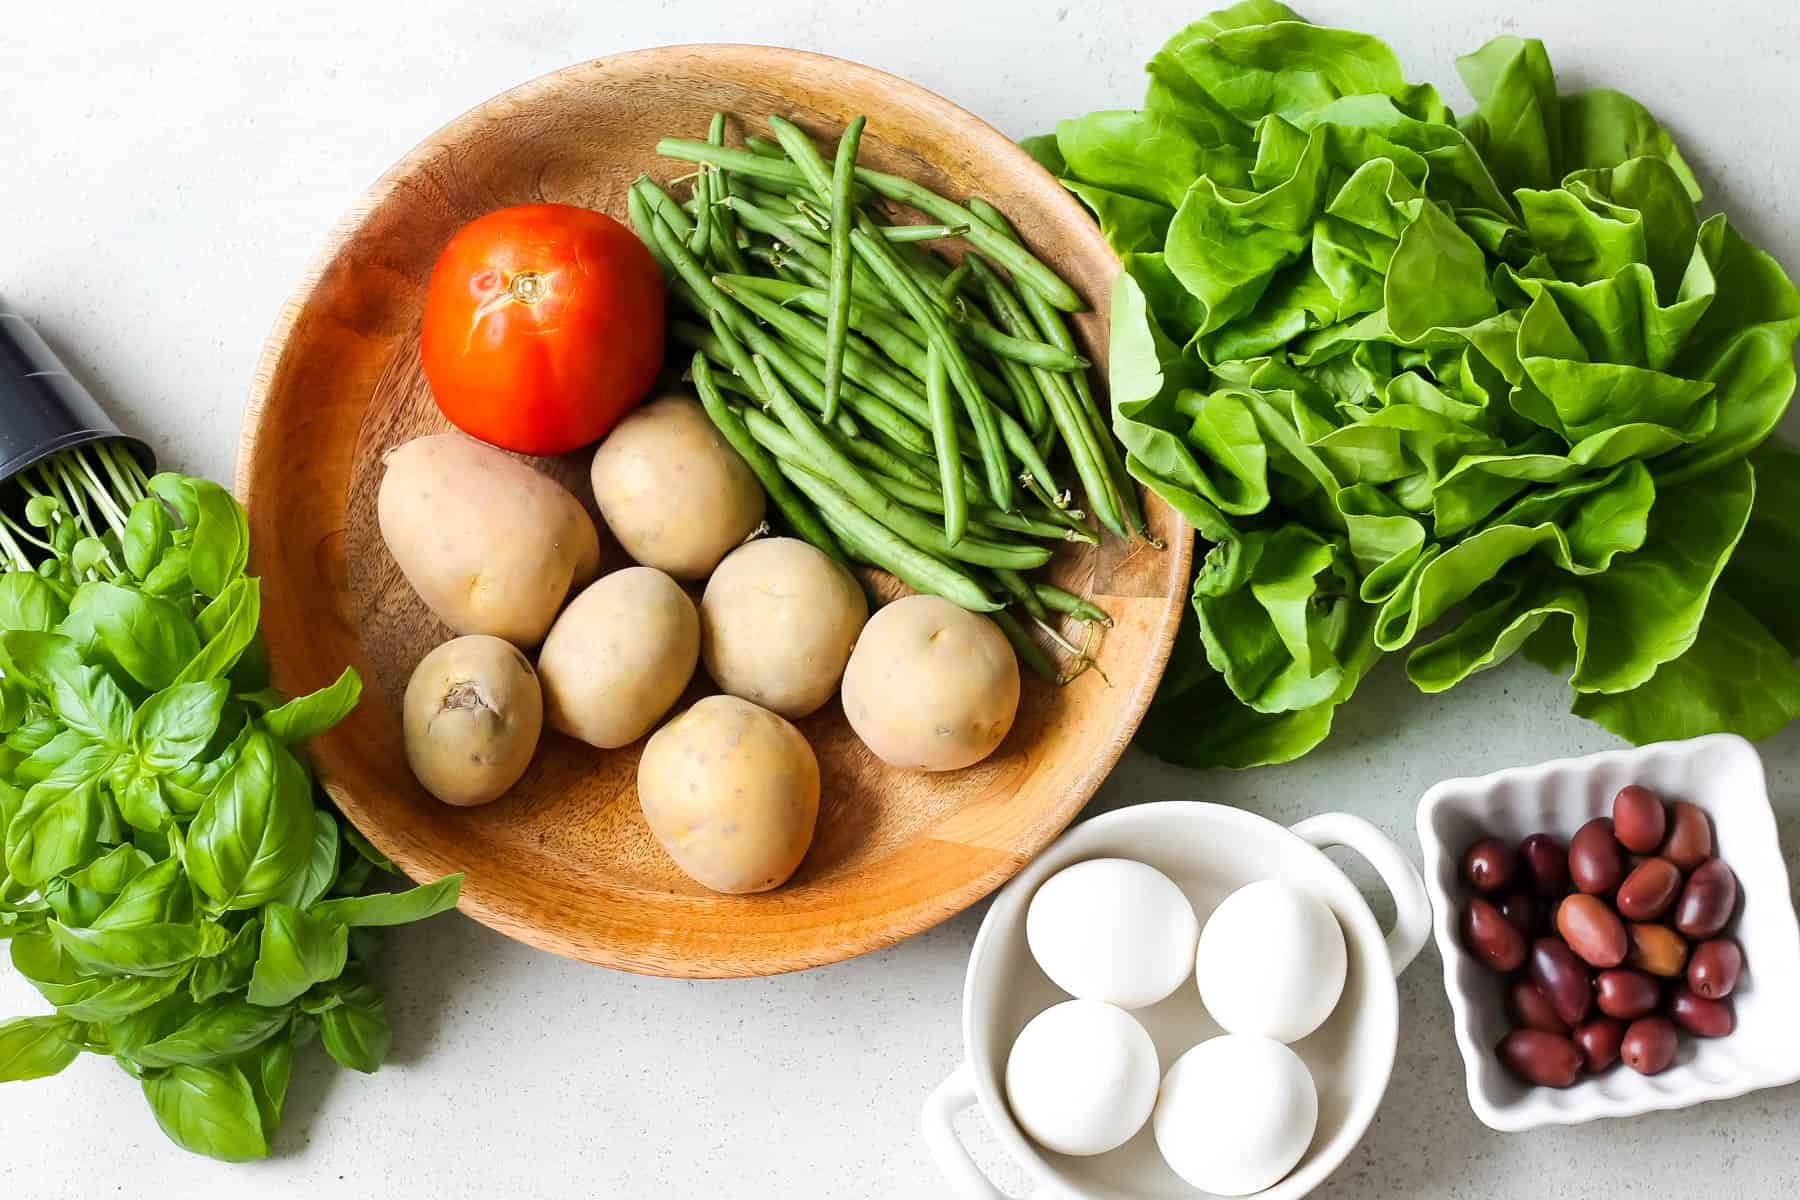 potatoes, green beans, and tomatoes in a wooden bowl surrounded by lettuce, olives, eggs, and basil on a grey background